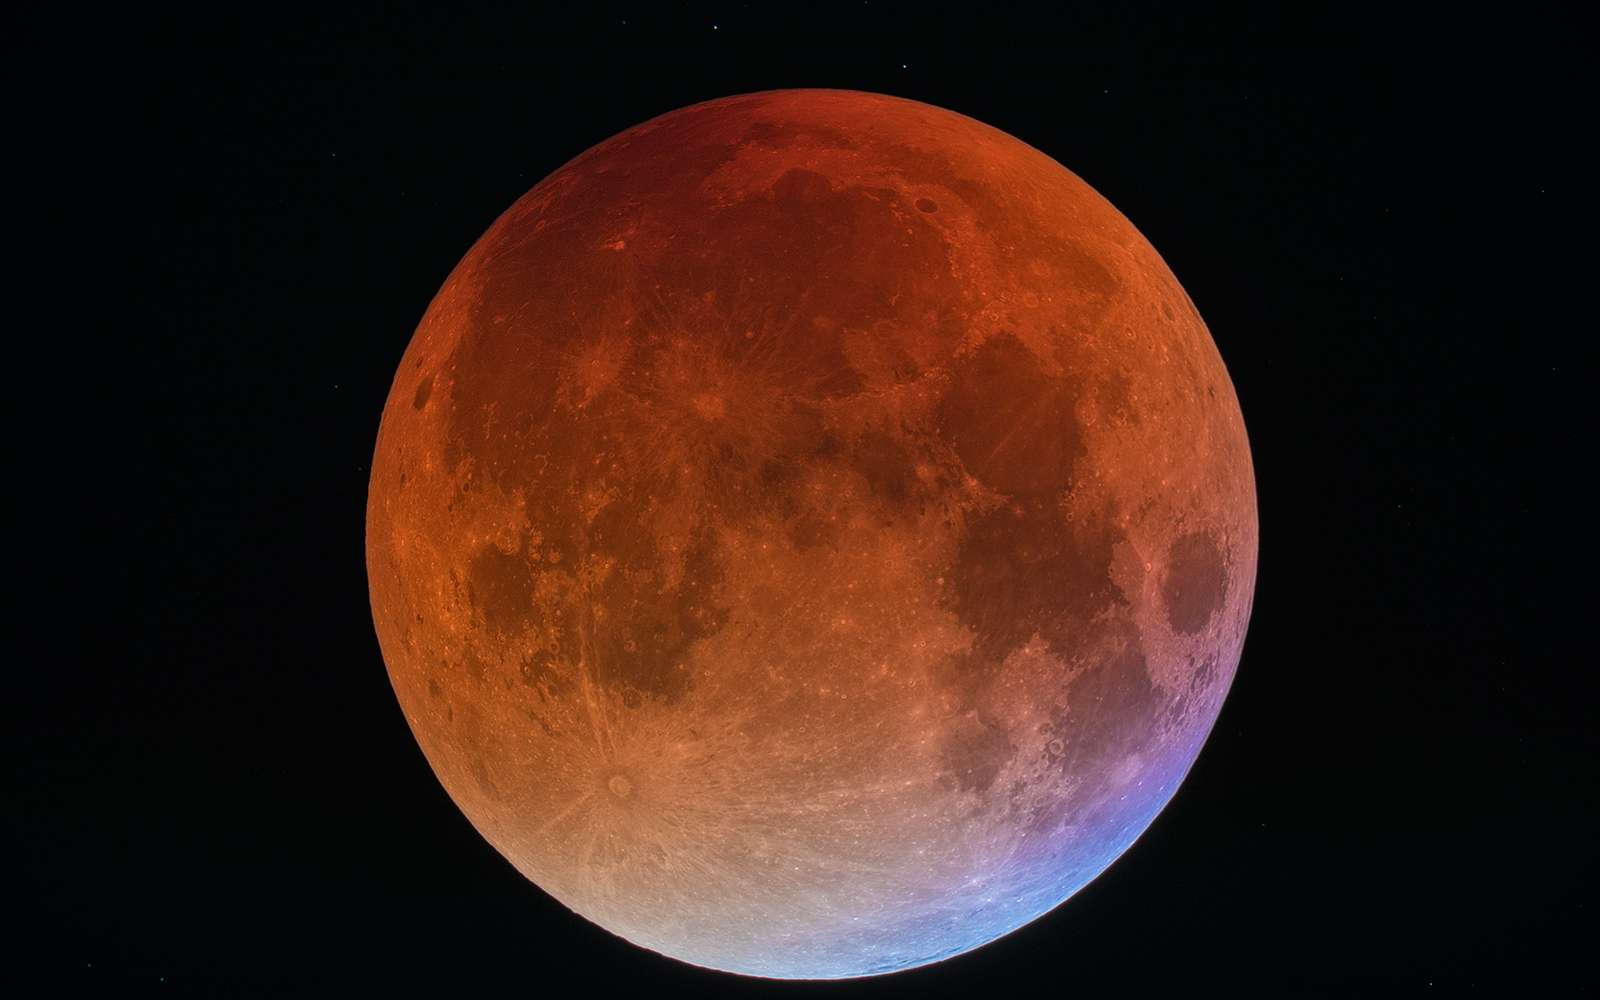 L'éclipse totale de Lune de septembre 2015. © Dominique Dierick